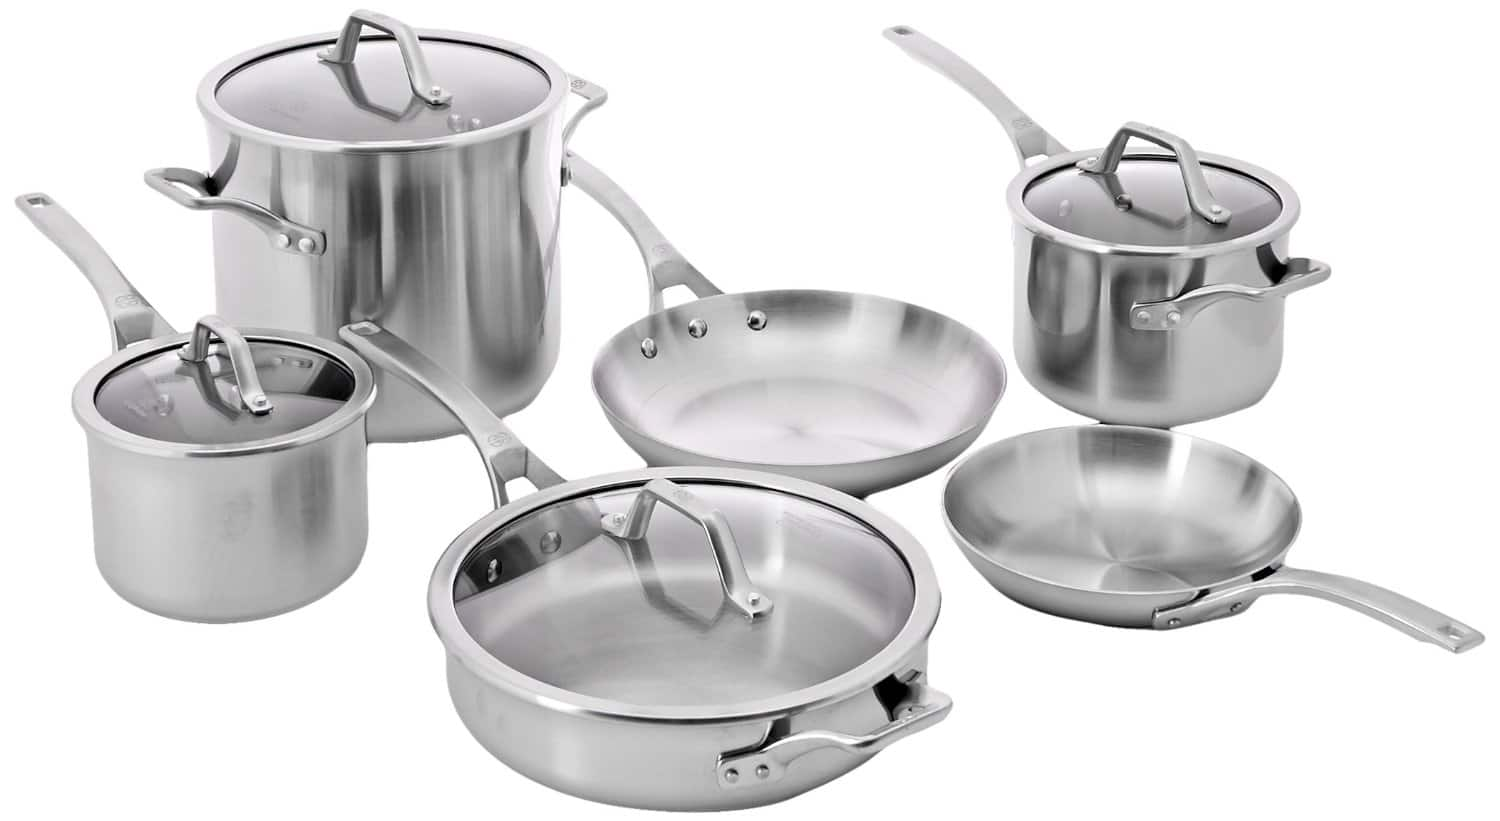 Calphalon Accucore 10 Piece Cookware Set $349 Deal of the Day @Amazon + FS w / prime